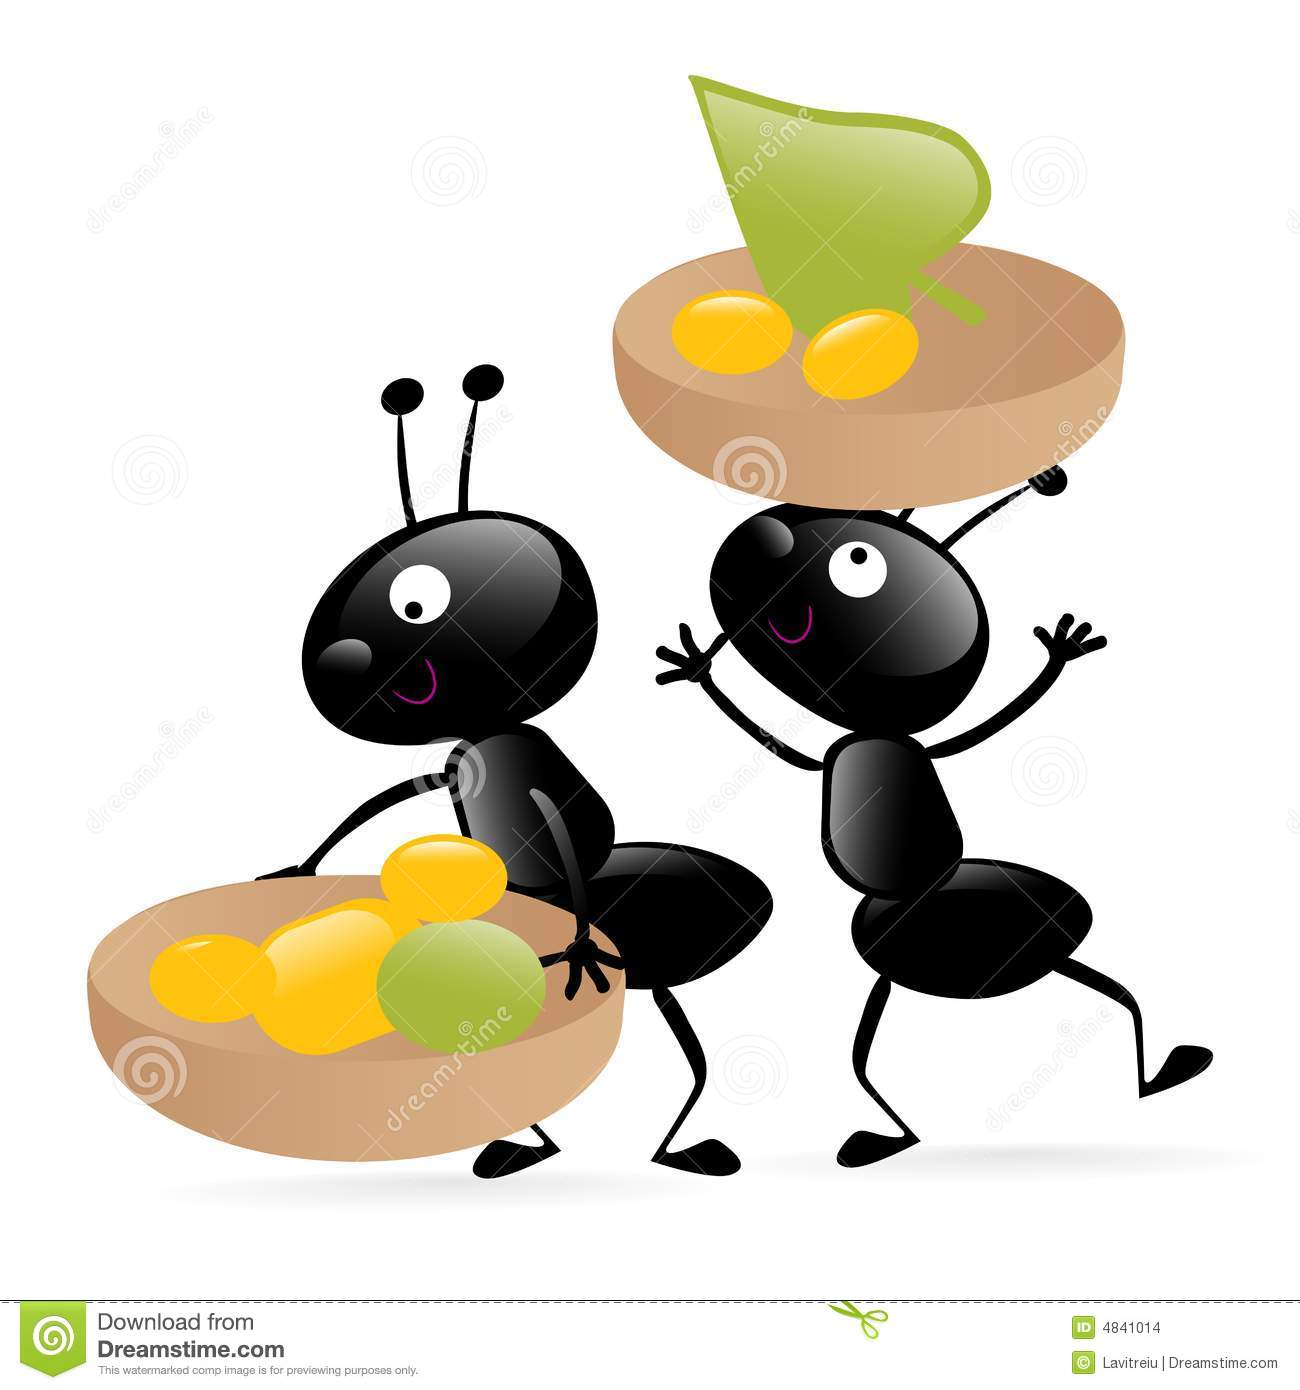 two little hardworking bugs stock vector illustration of humor